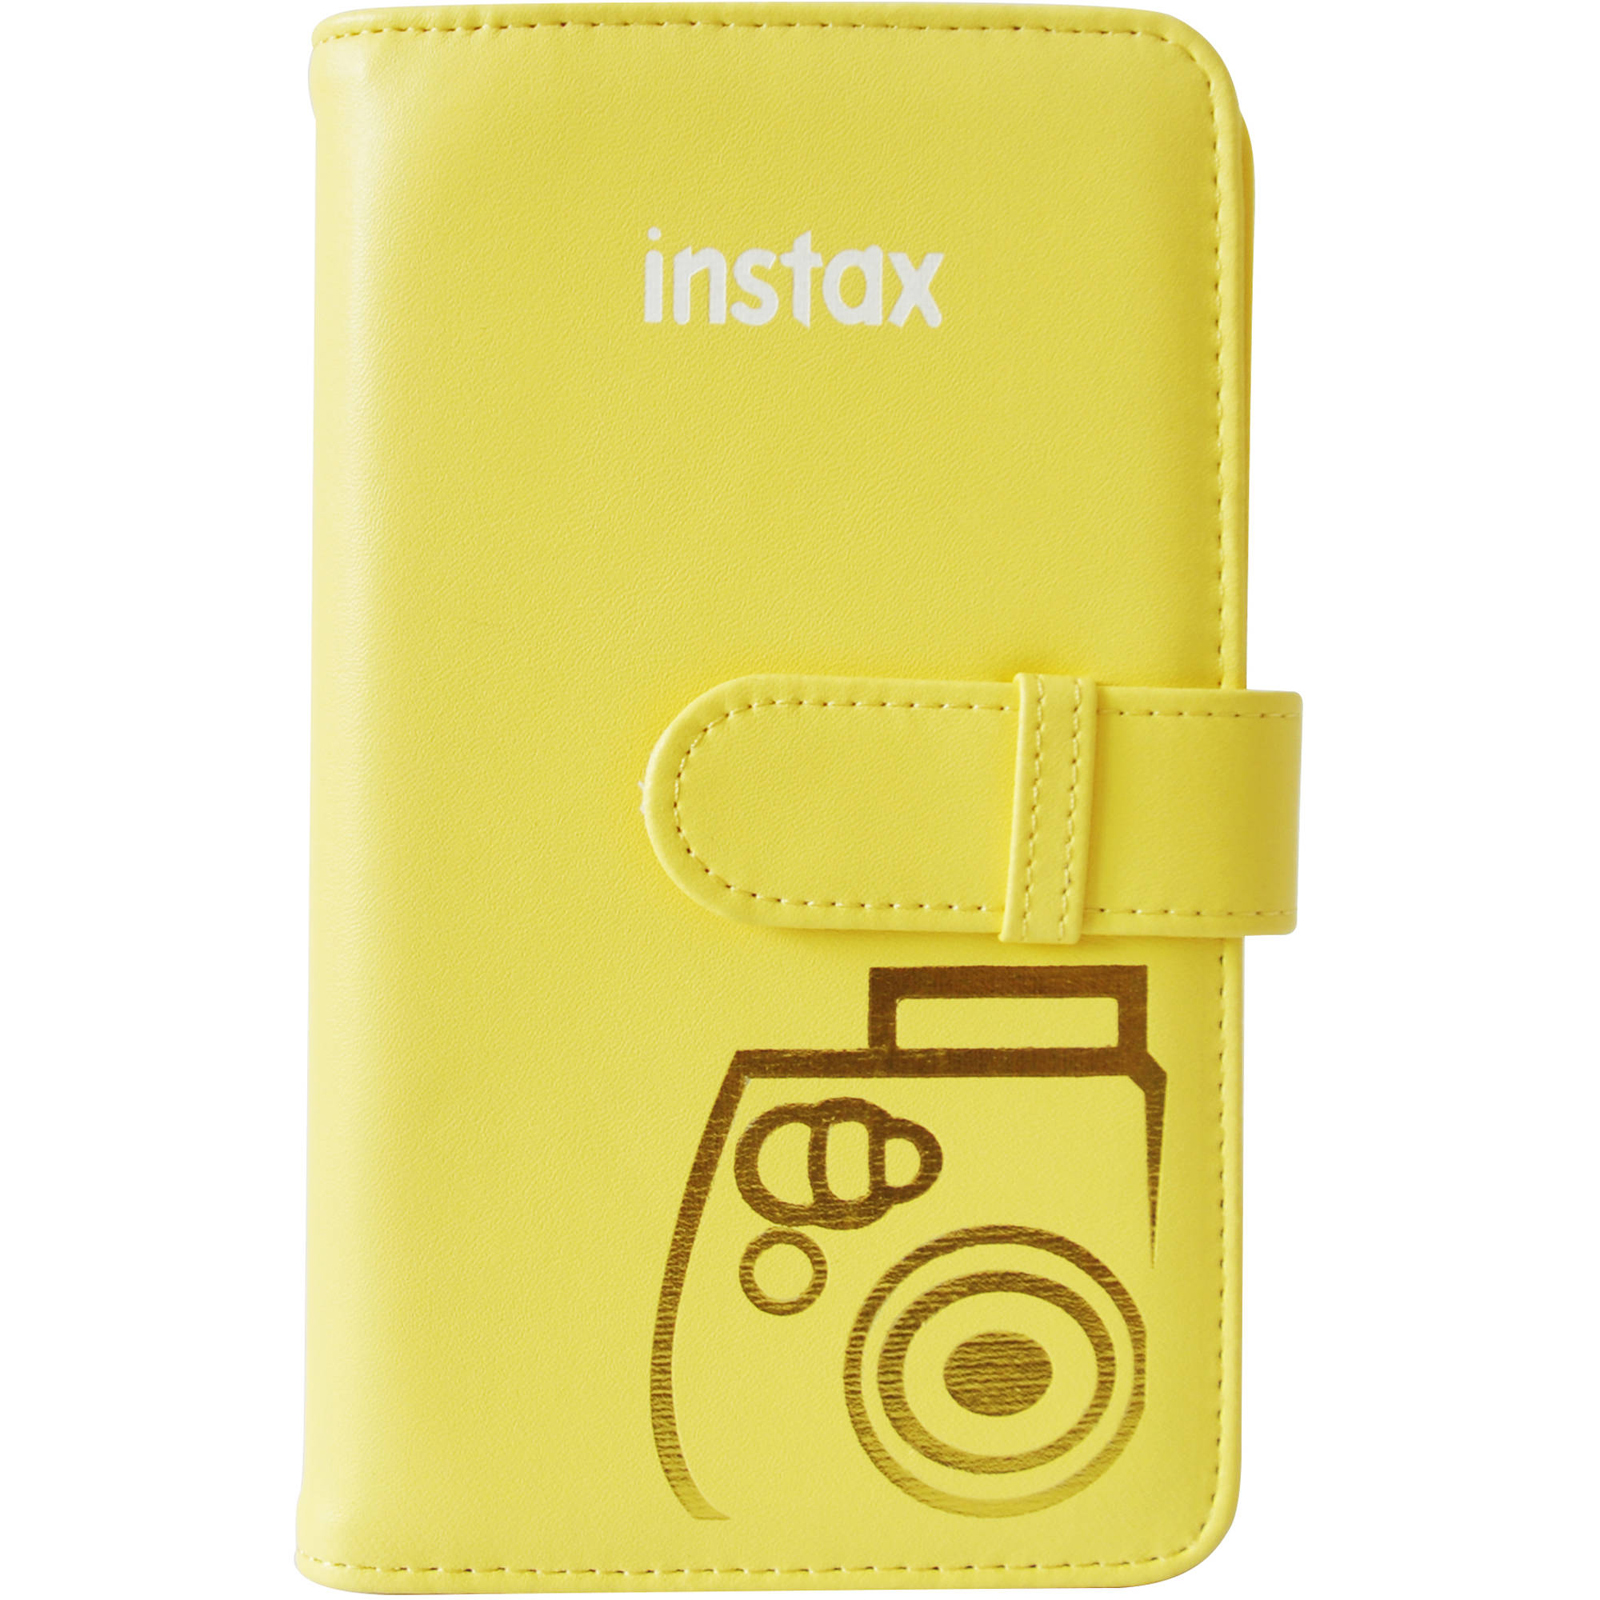 Instax Wallet Album 108 - Yellow